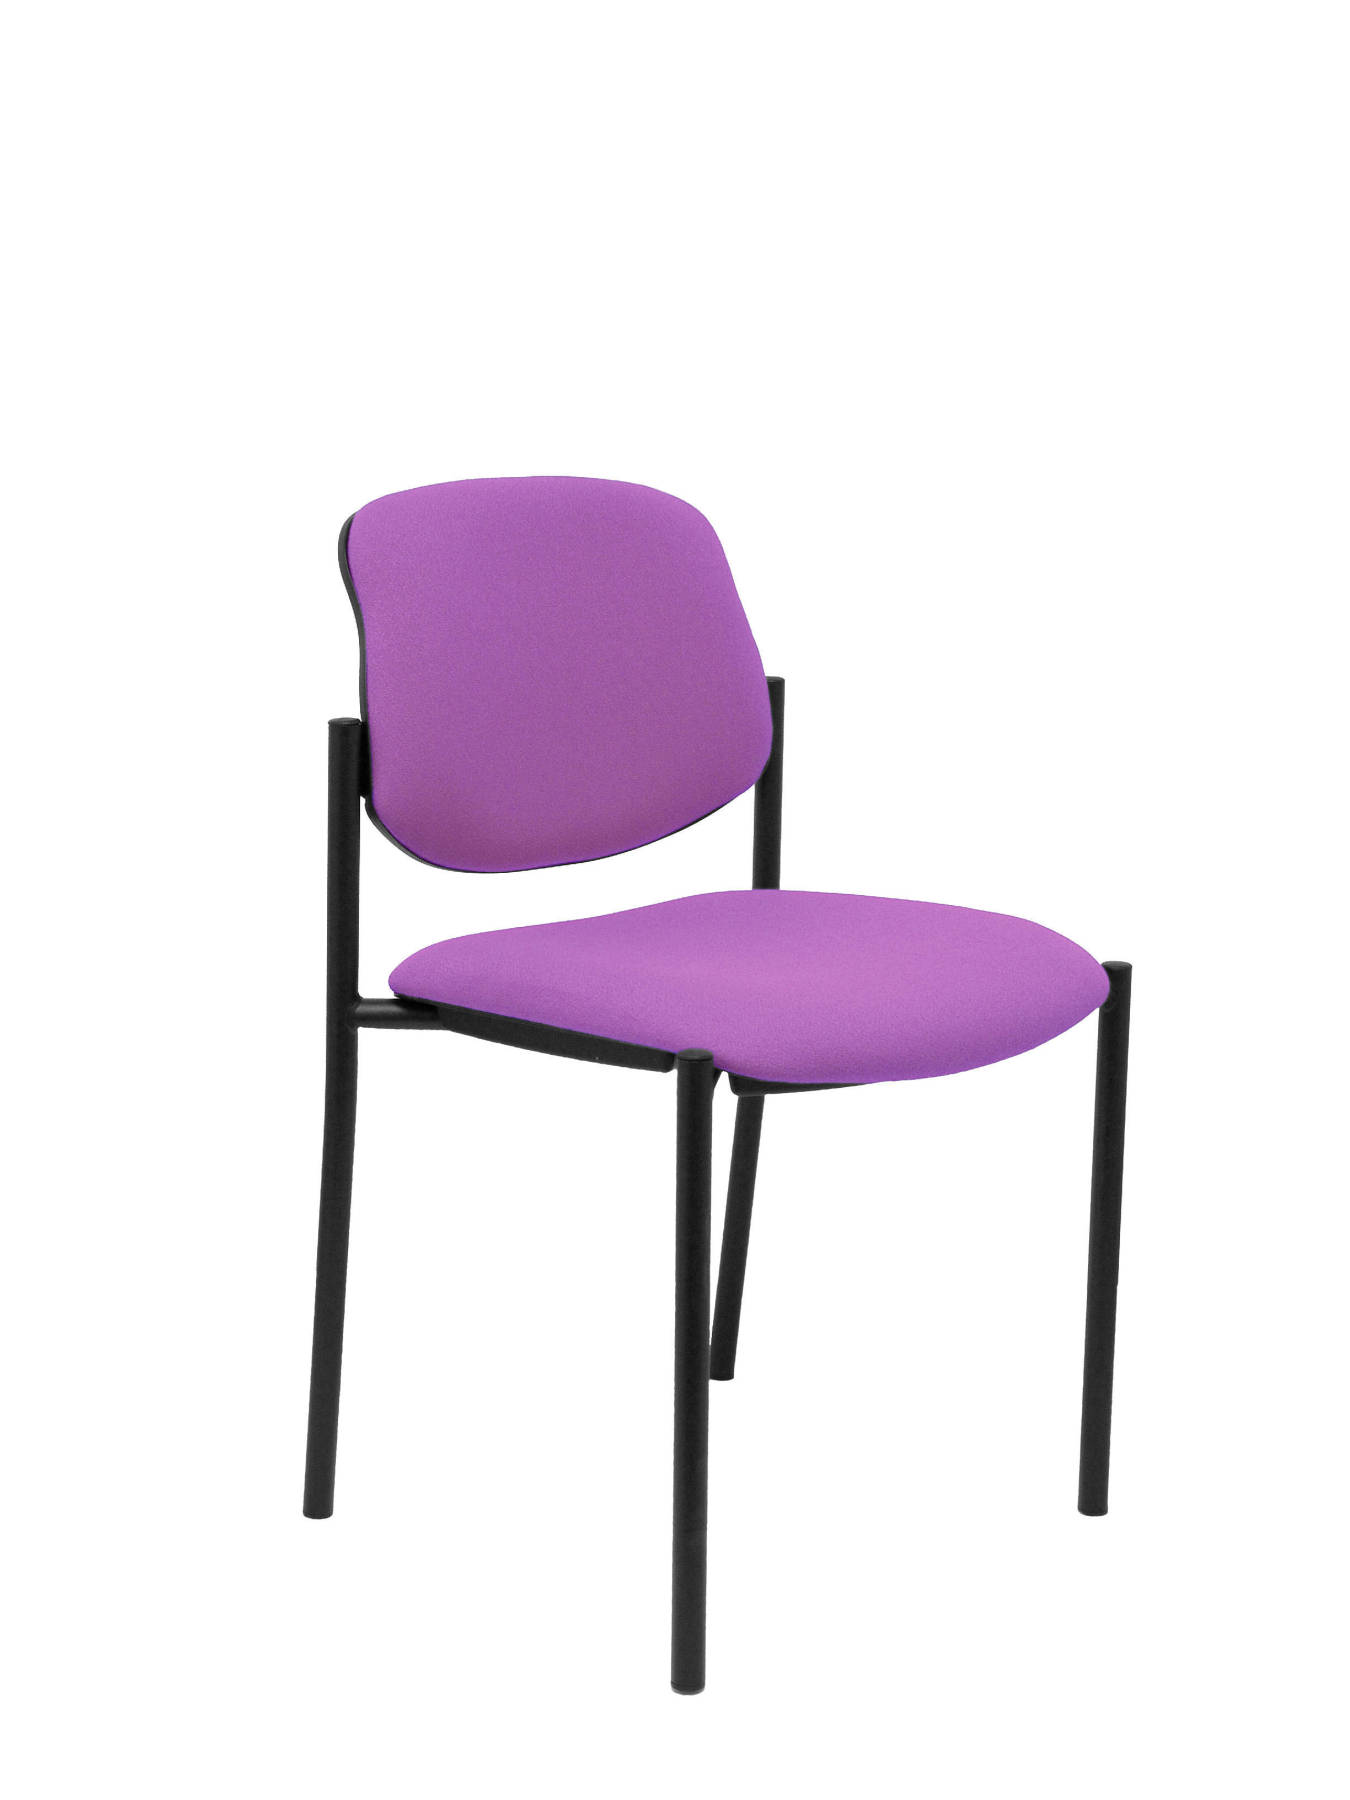 Visitor Chair 4's Topsy And Estructrua Negro-up Seat And Backstop Upholstered In BALI Tissue Color Lilac TAPHOLE AND CRESP